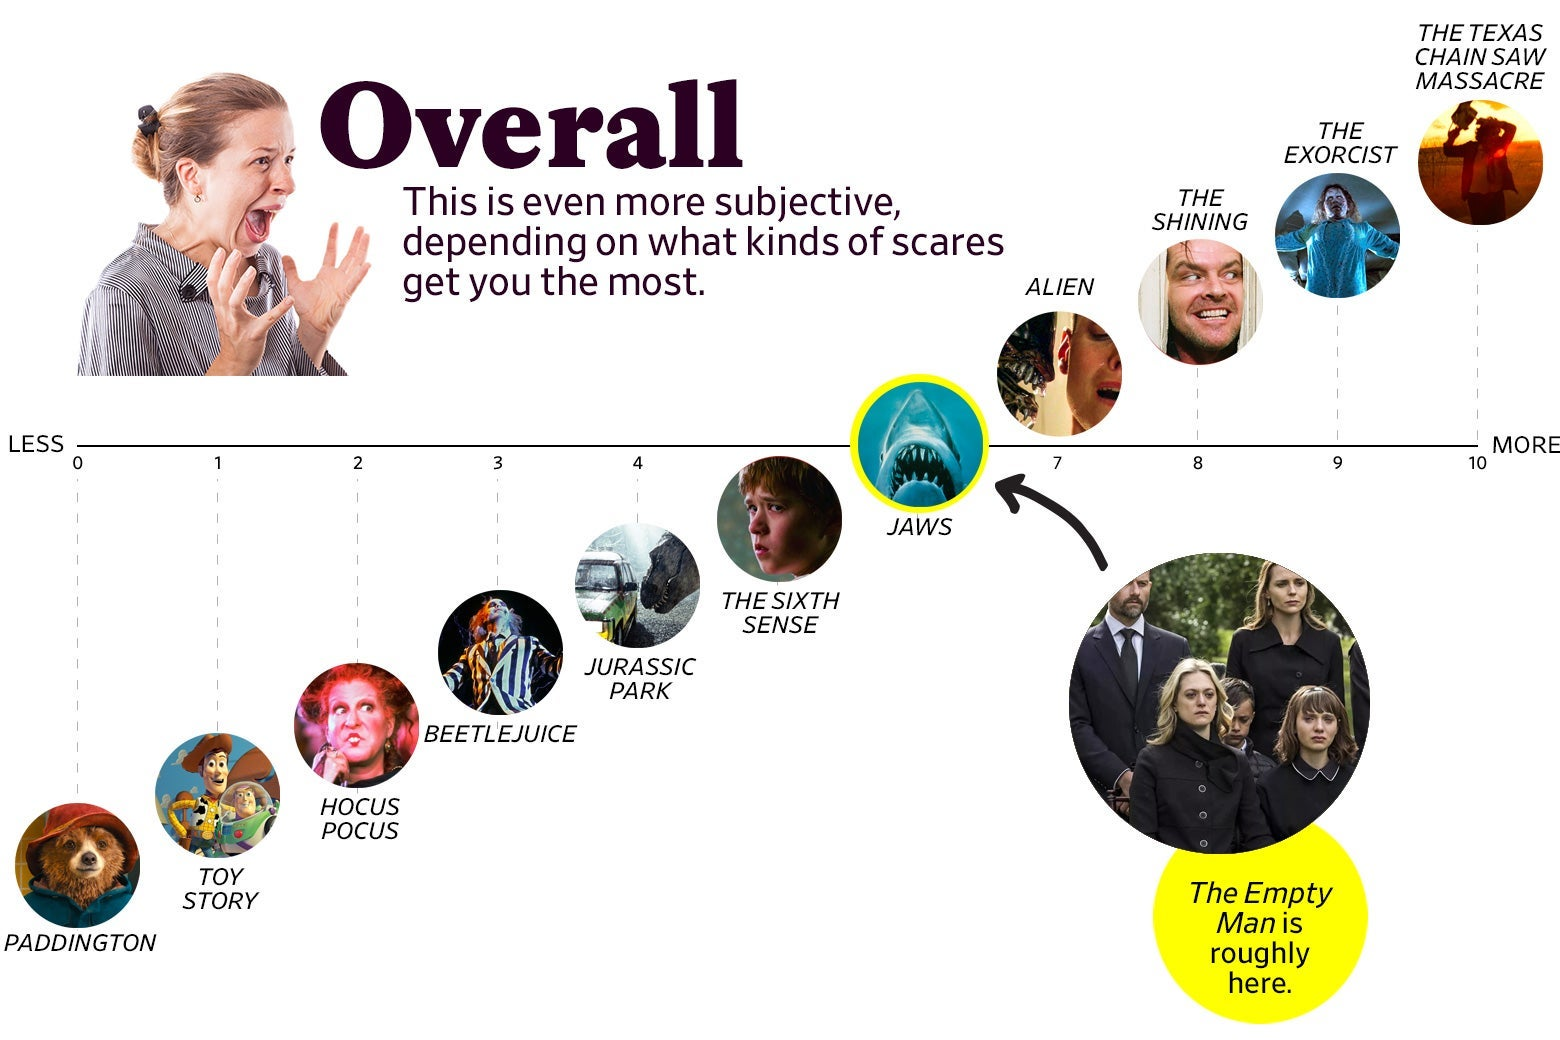 """A chart titled """"Overall: This is even more subjective, depending on what kinds of scares get you the most"""" shows that The Empty Man ranks as a 6, roughly the same as Jaws. The scale ranges from Paddington (0) to the original Texas Chain Saw Massacre (10)"""